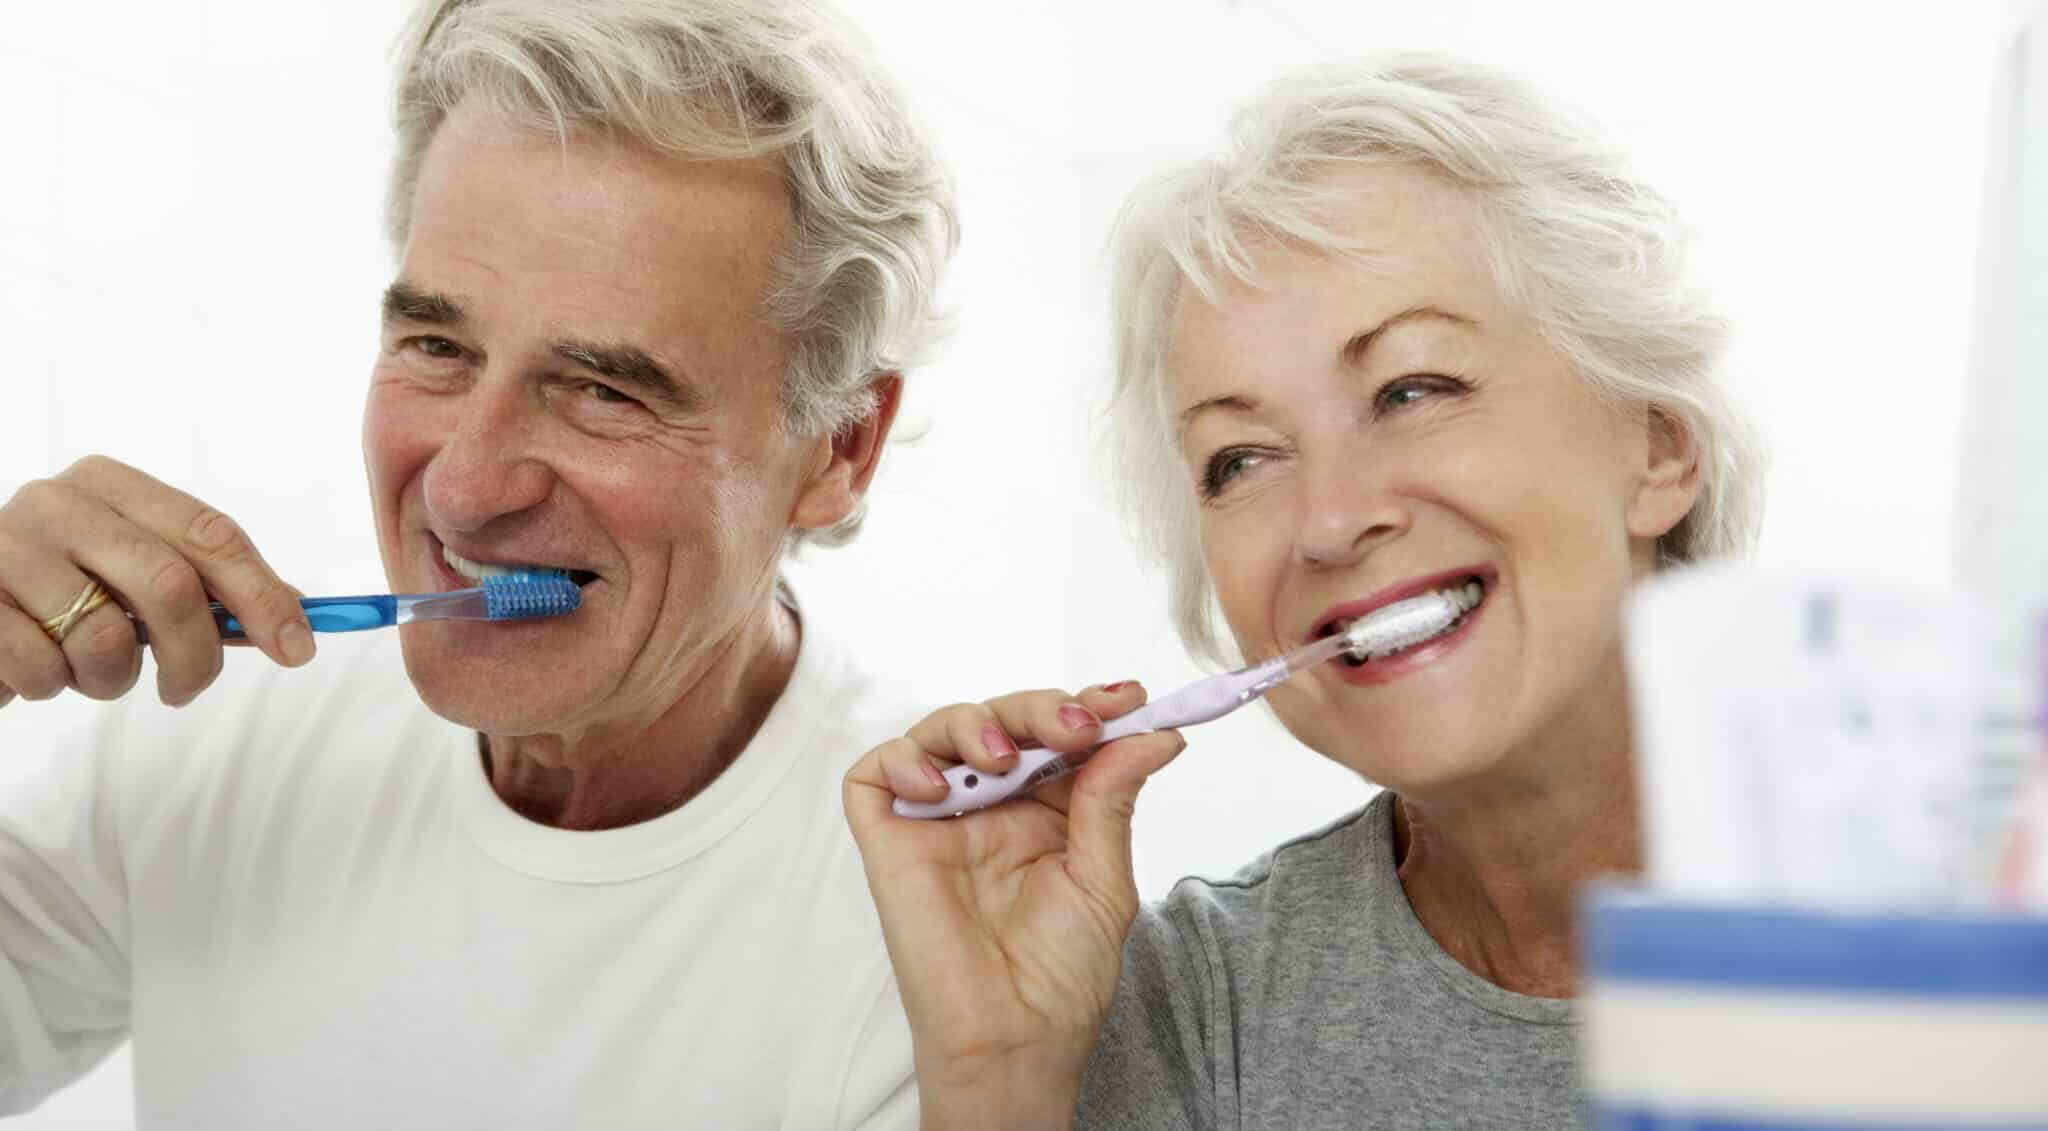 older couple brushing teeth in bathroom habits spread coronavirus